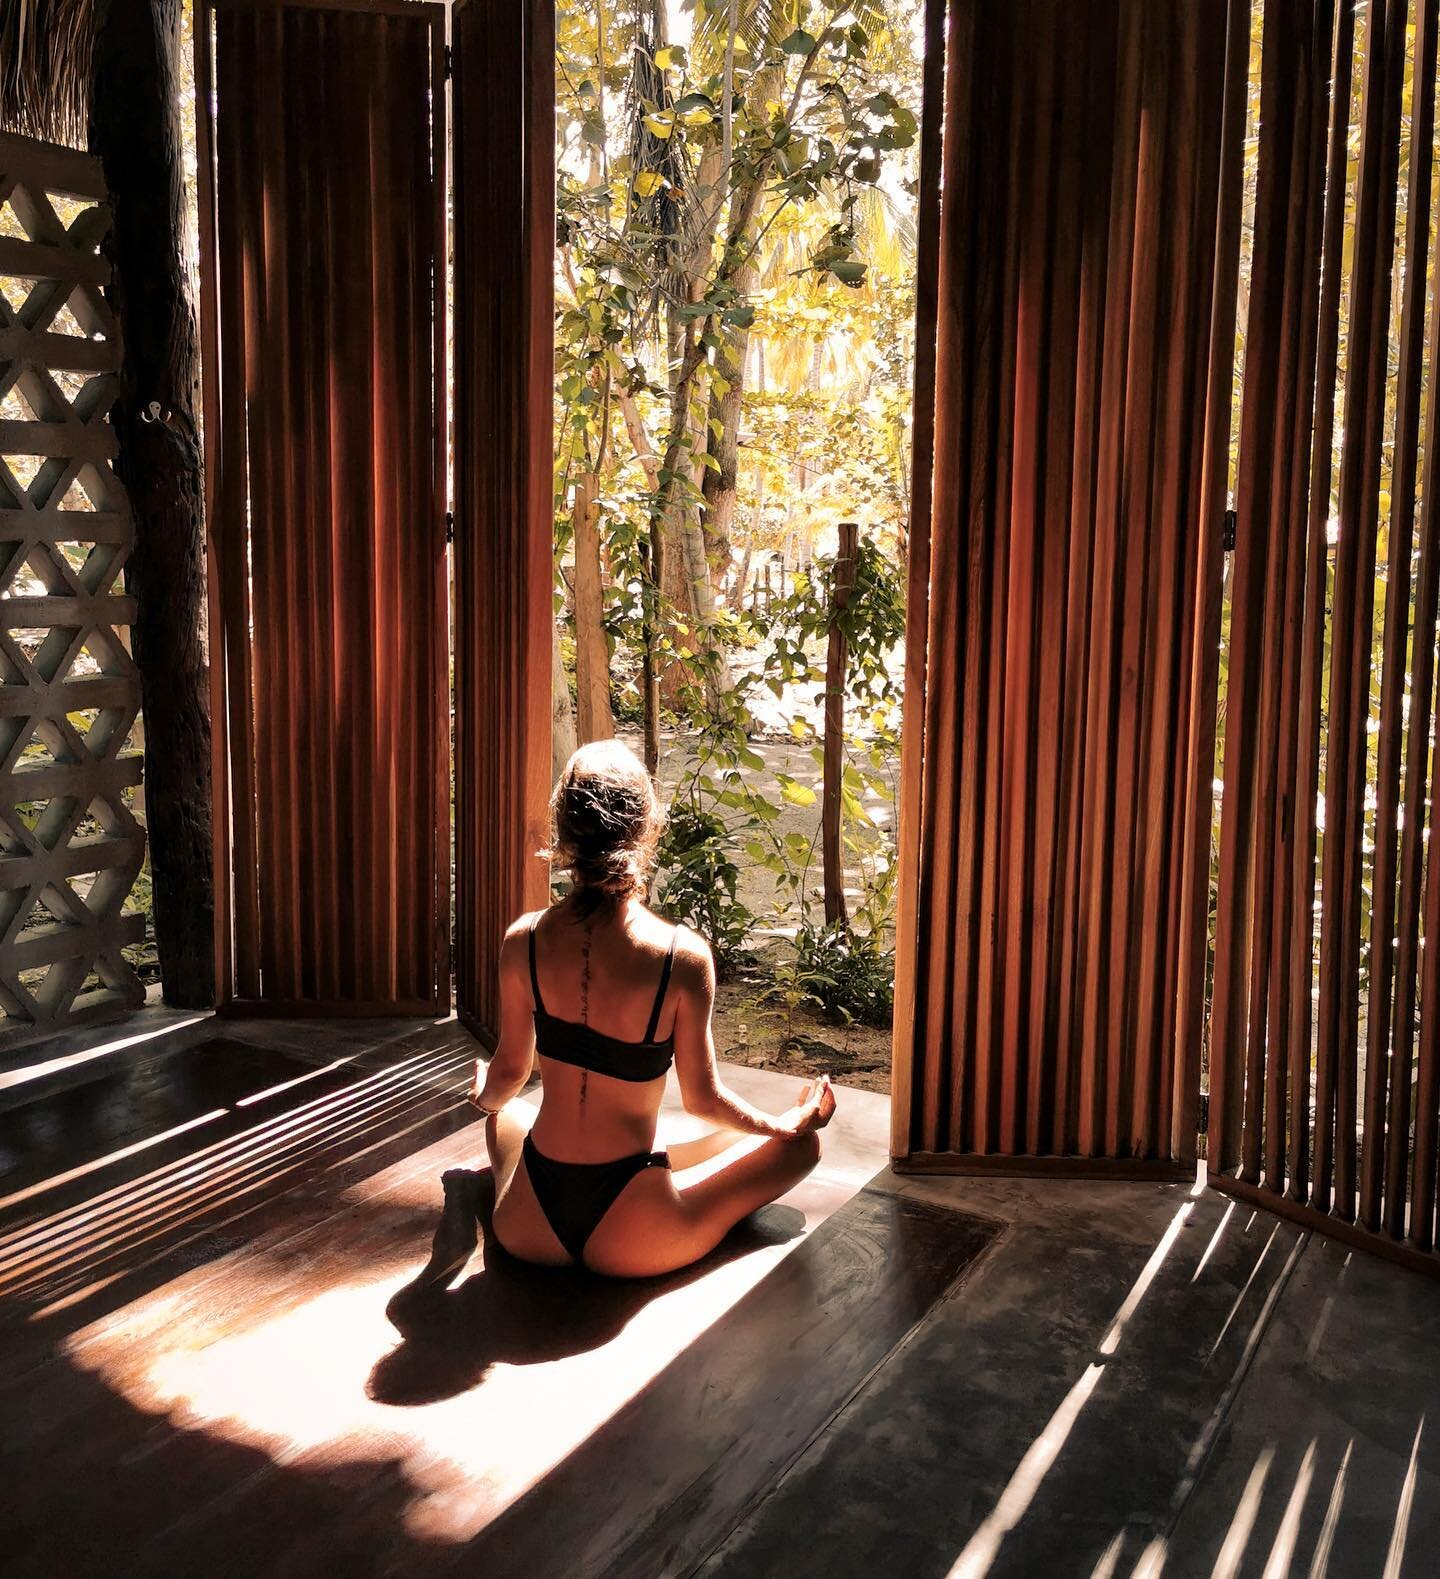 Nothing can dim the light which shines from within ~ Maya Angelou . . @alicialondono88by @martinme5a   at Gitana Wellness Spa . #gitanadelmar #boutiquehotel #wellnesscenter #naturehotel #meditate #bepresent #mindfulness #sierranevadadesantamarta #caribe #colombia